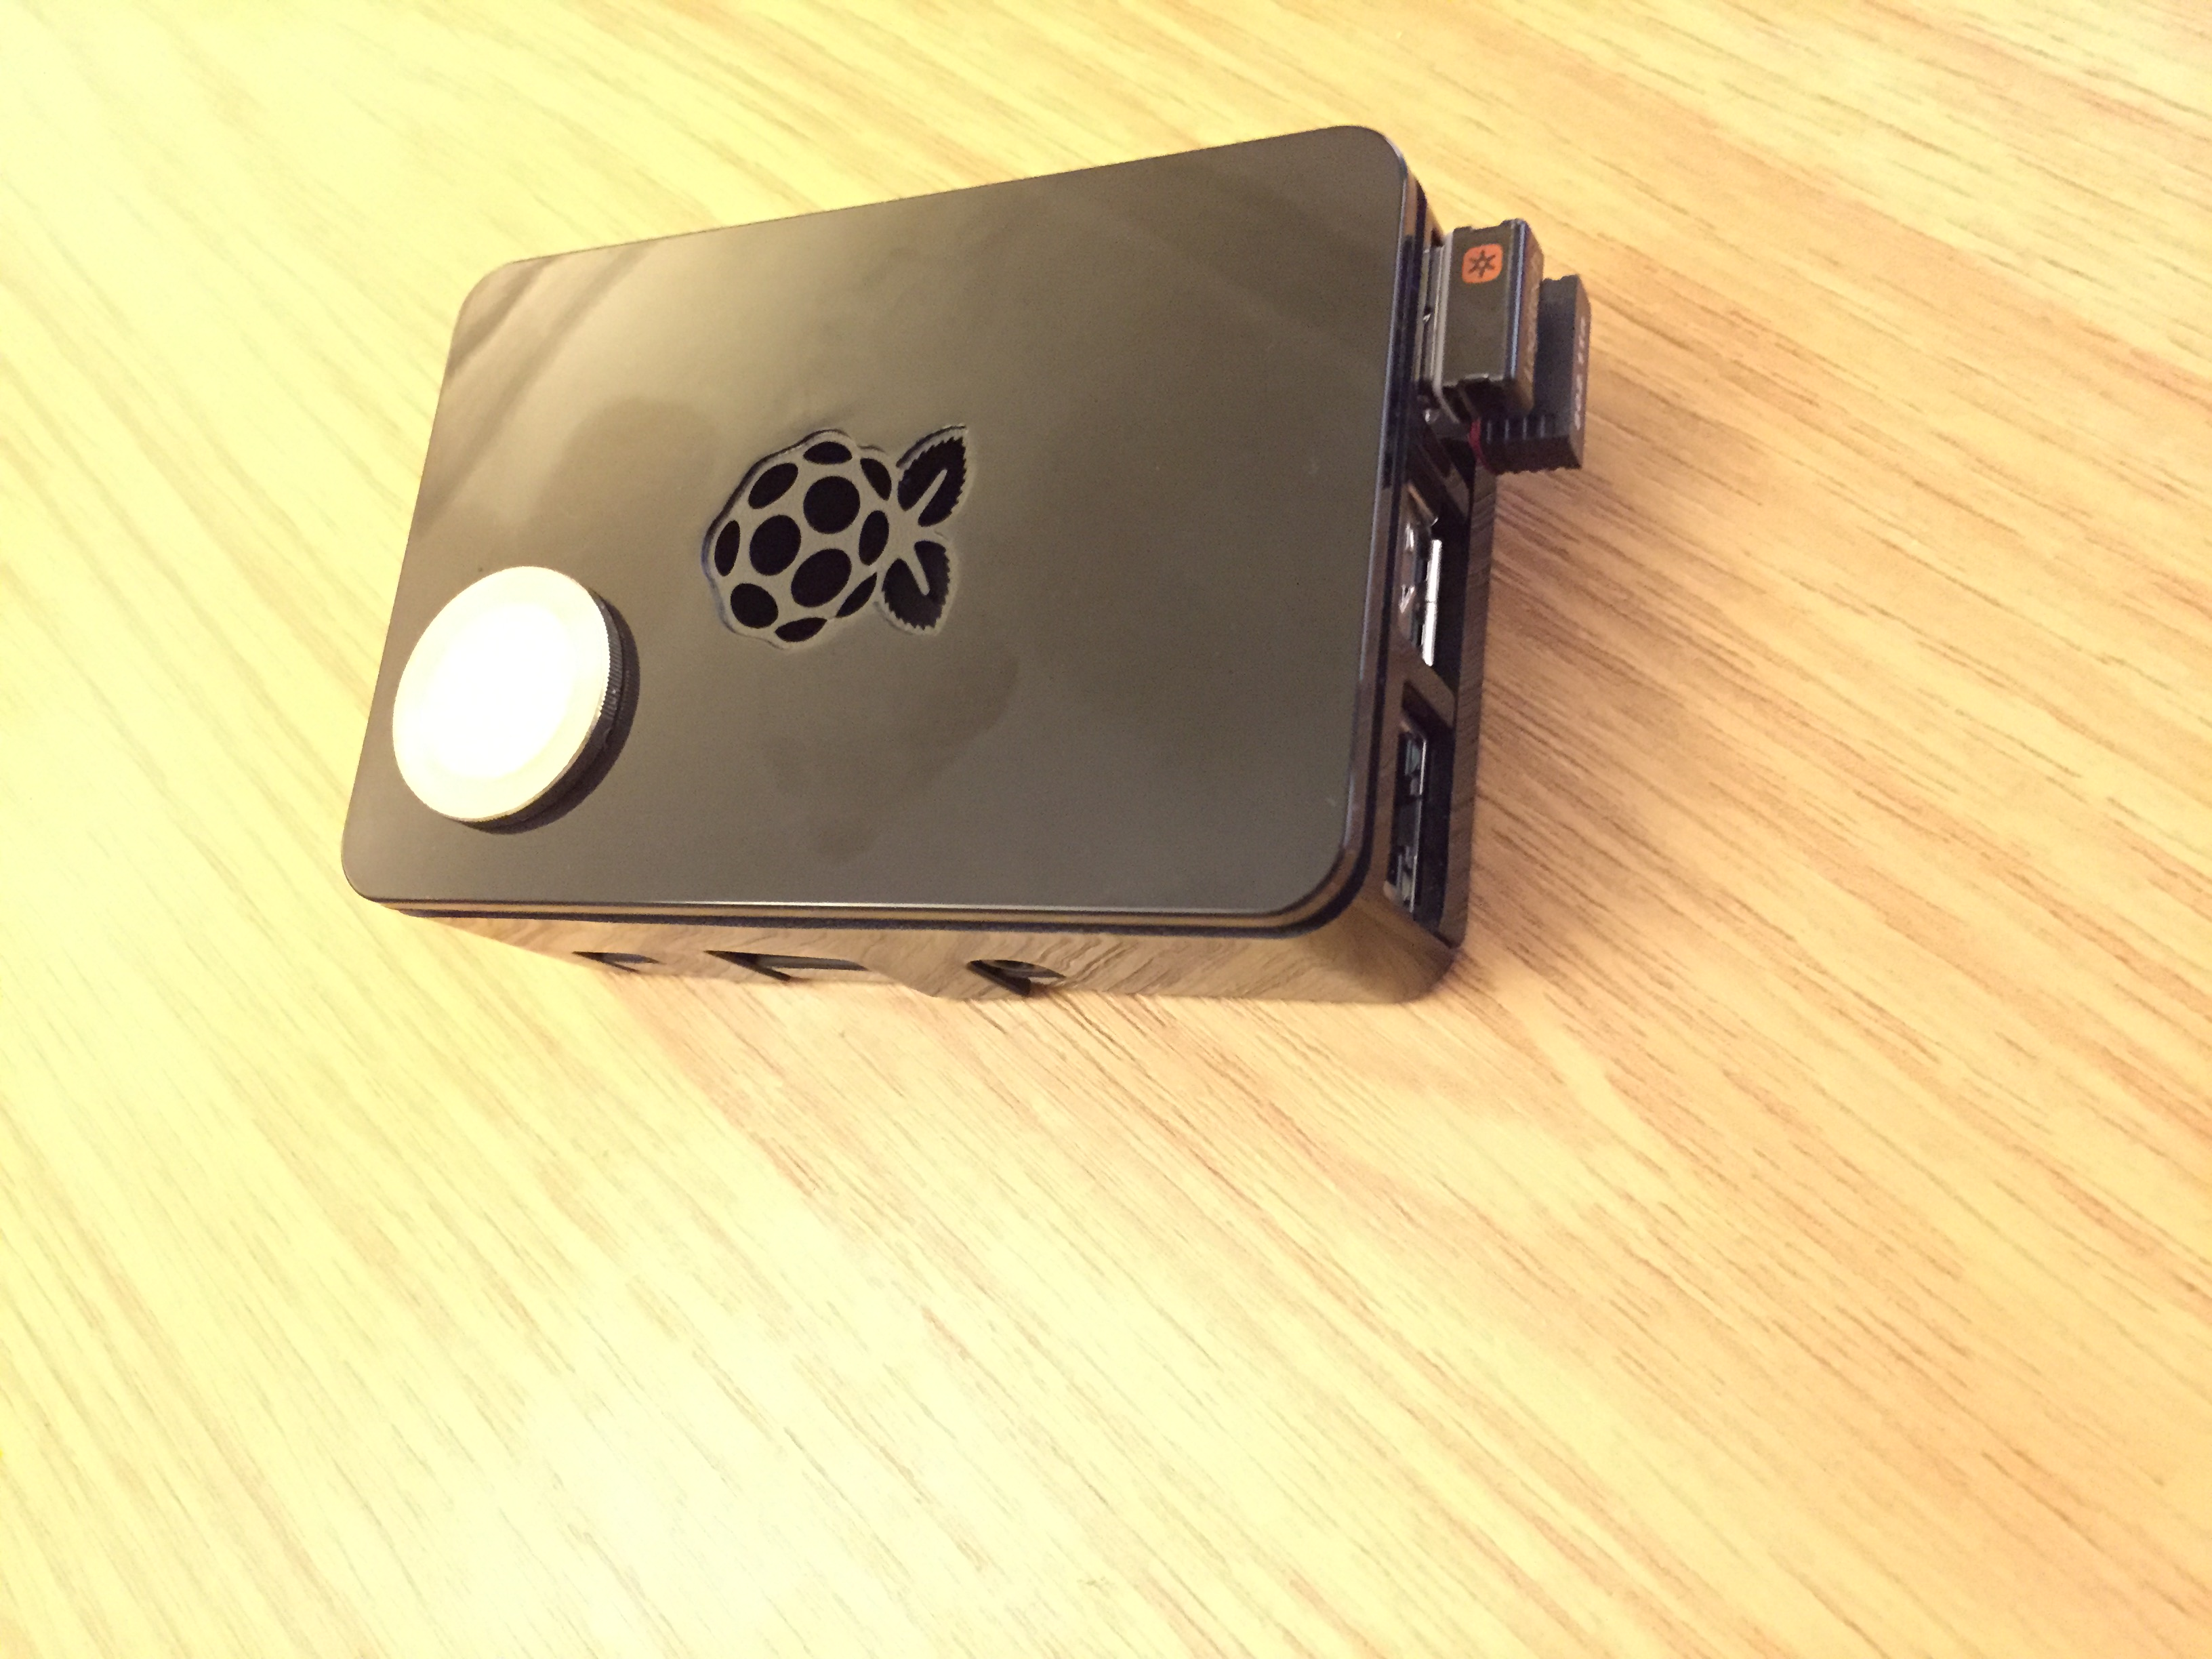 Raspberry Pi 2 in Case with WiFi dongle and wireless keyboard dongle